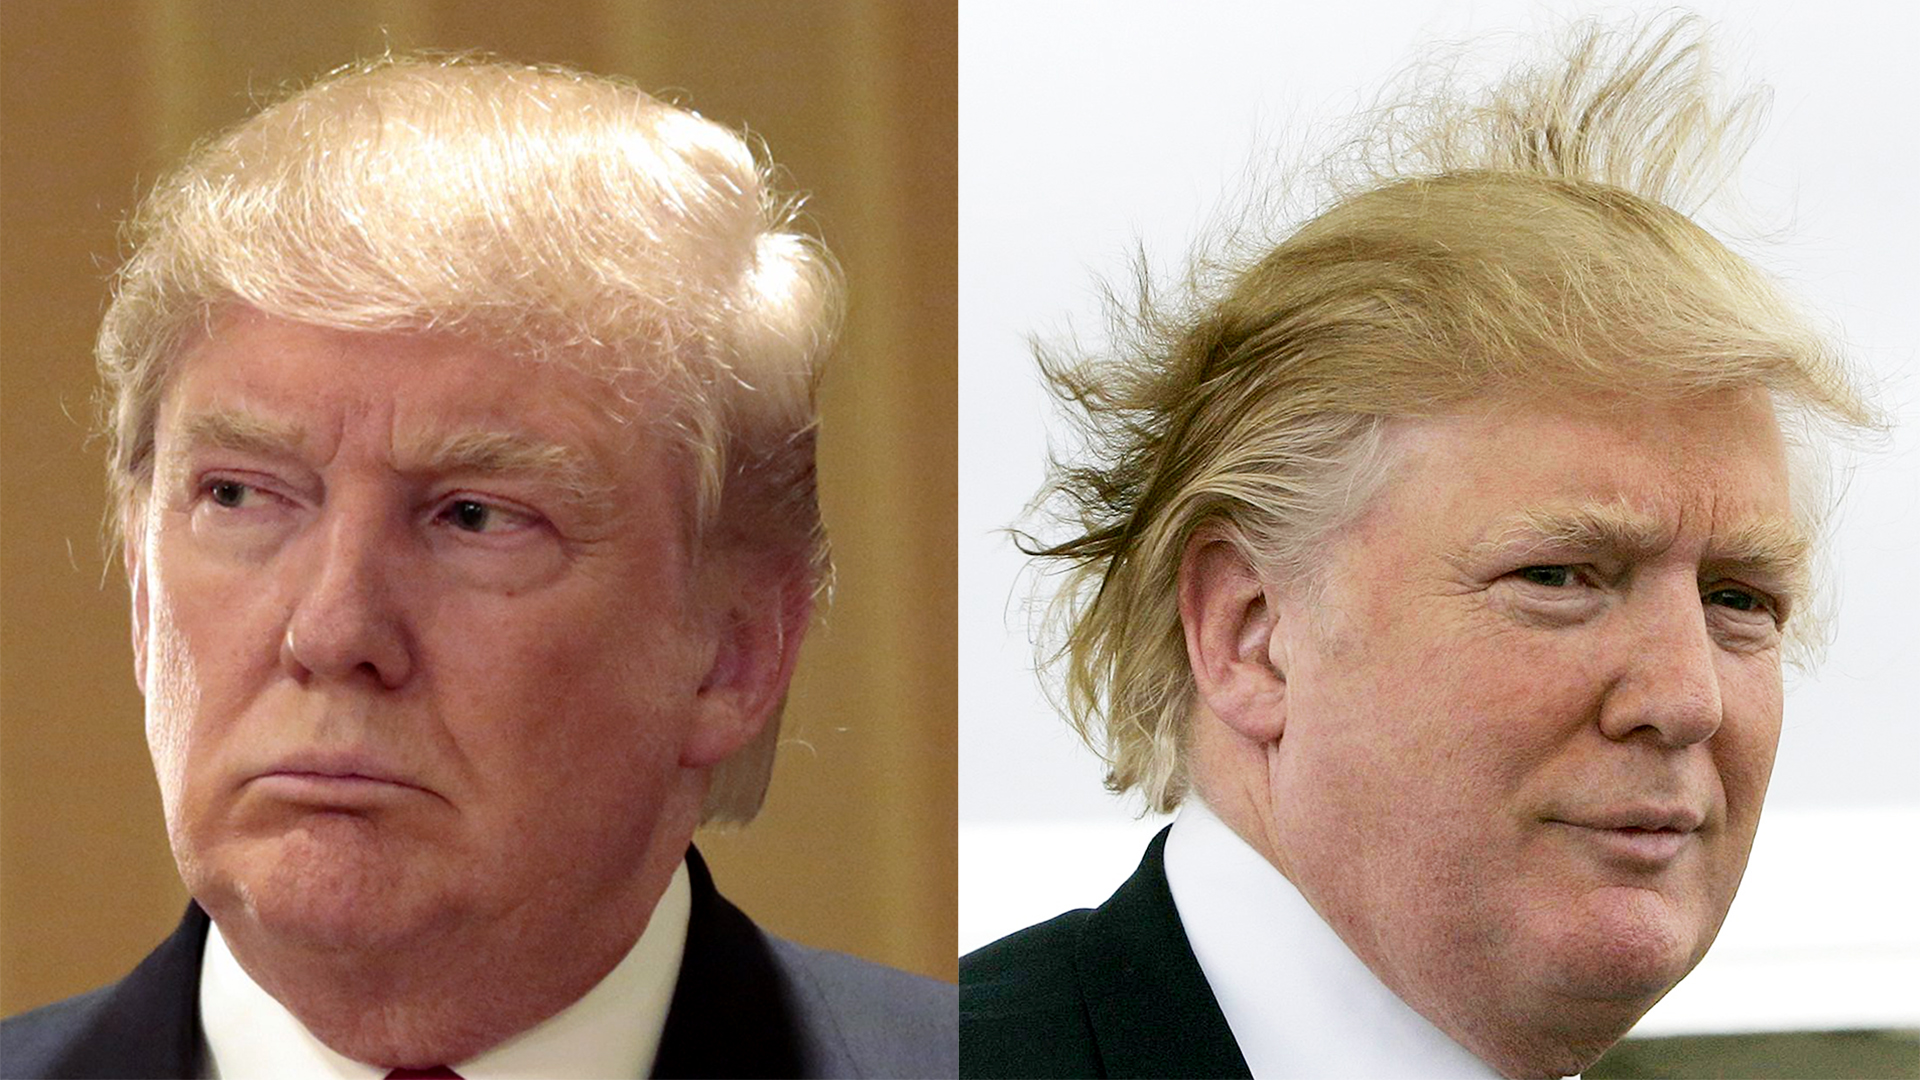 Donald Trumps Hair Defended And Explained In His Own Words